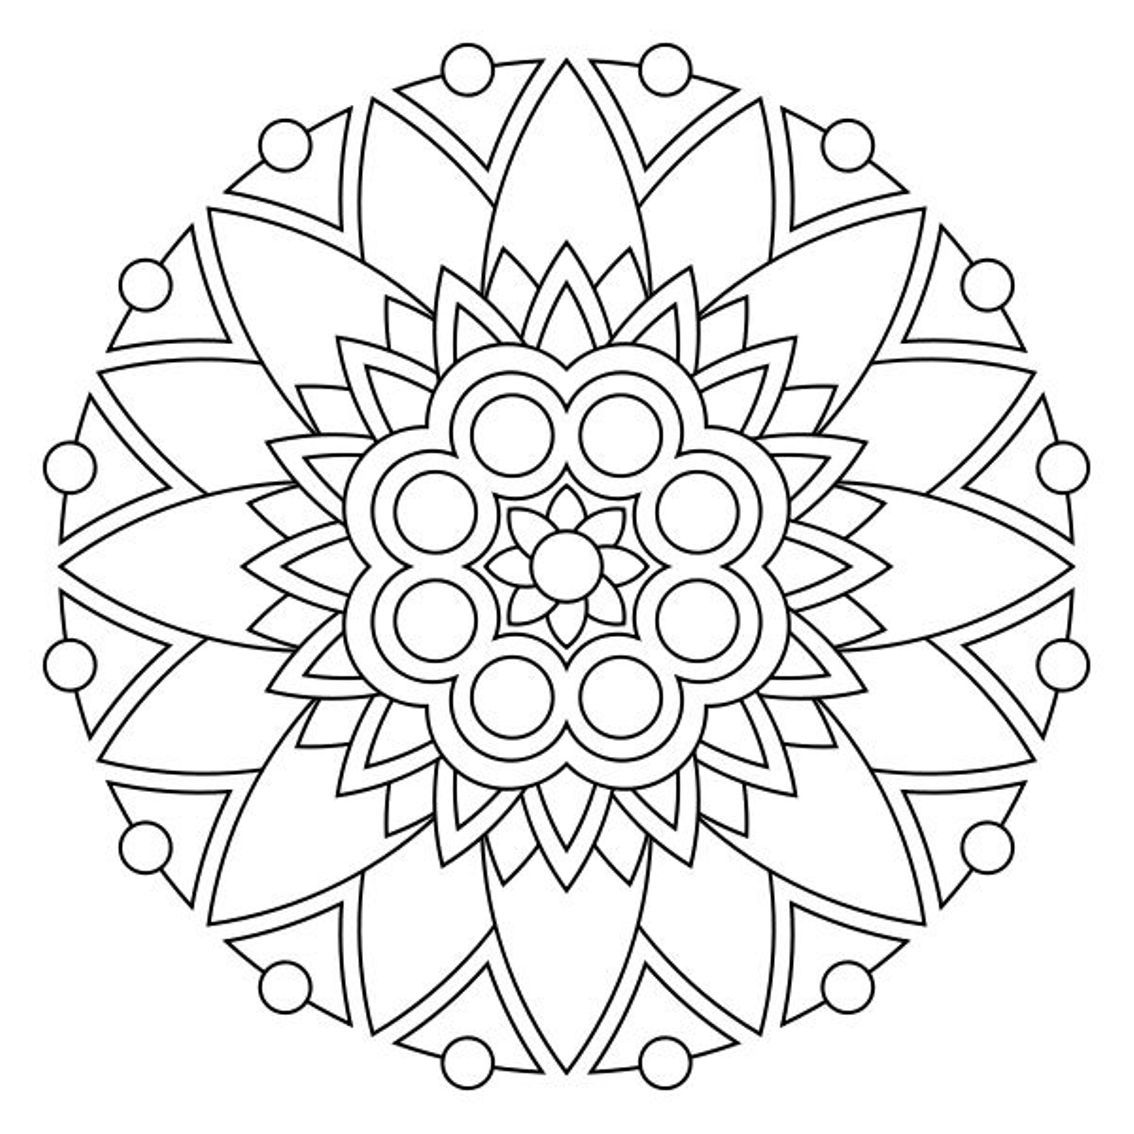 Geometric and abstract this is a modern mandala coloring page for